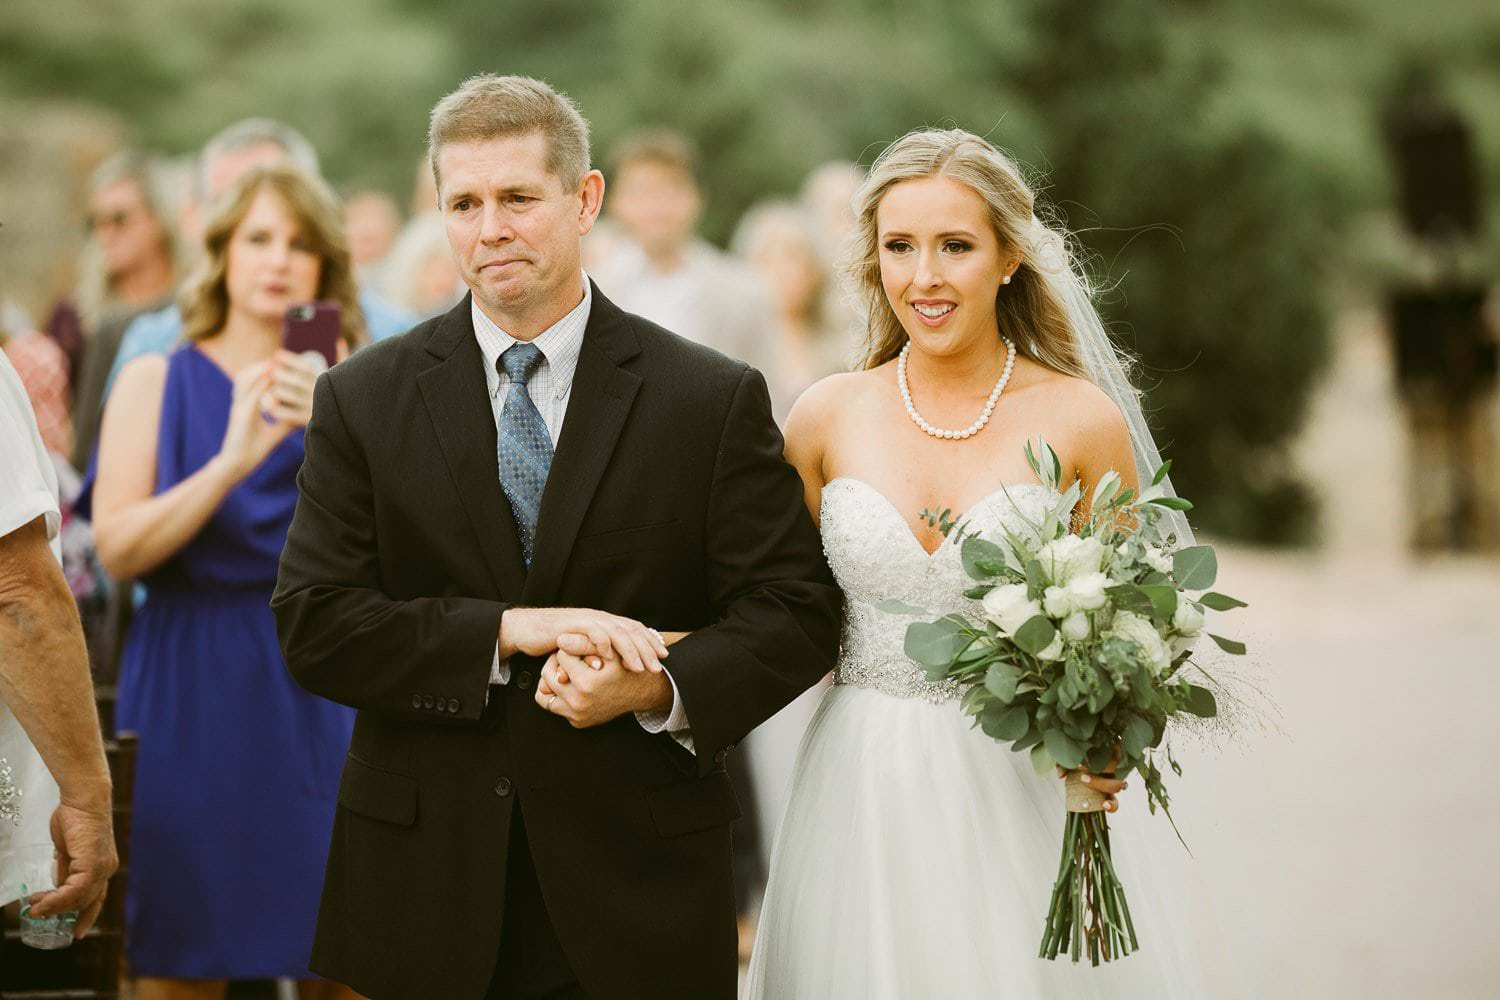 WILLOW RIDGE MANOR WEDDING PHOTOS|JUSTYNA E BUTLER PHOTOGRAPHY|MORRISON WEDDING||MOUNTAIN INTIMATE WEDDING|FOOTHILLS INTIMATE WEDDING|COLORADO MOUNTAIN WEDDING PHOTOGRAPHER|COLORADO WEDDING PHOTOGRAPHER|MARISSA+NICK